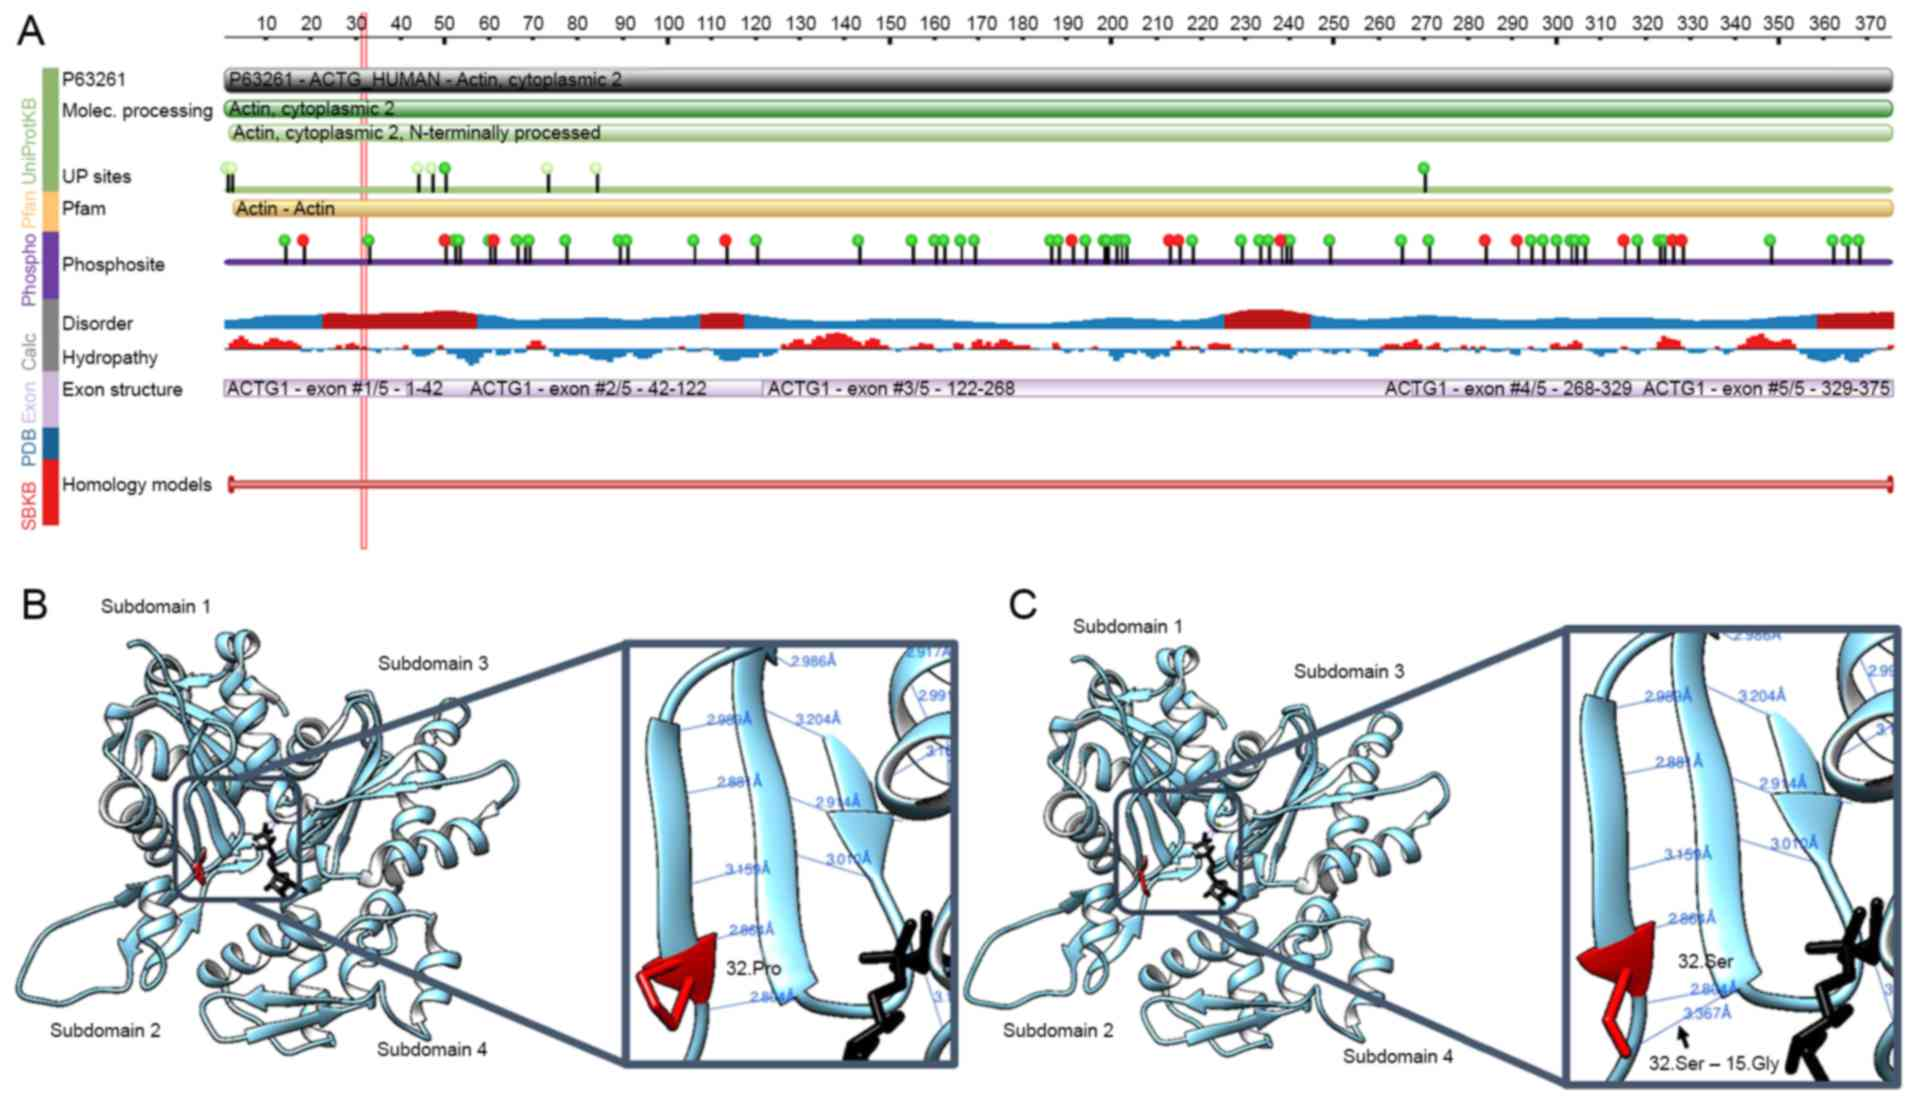 A novel missense mutation in the ACTG1 gene in a family with